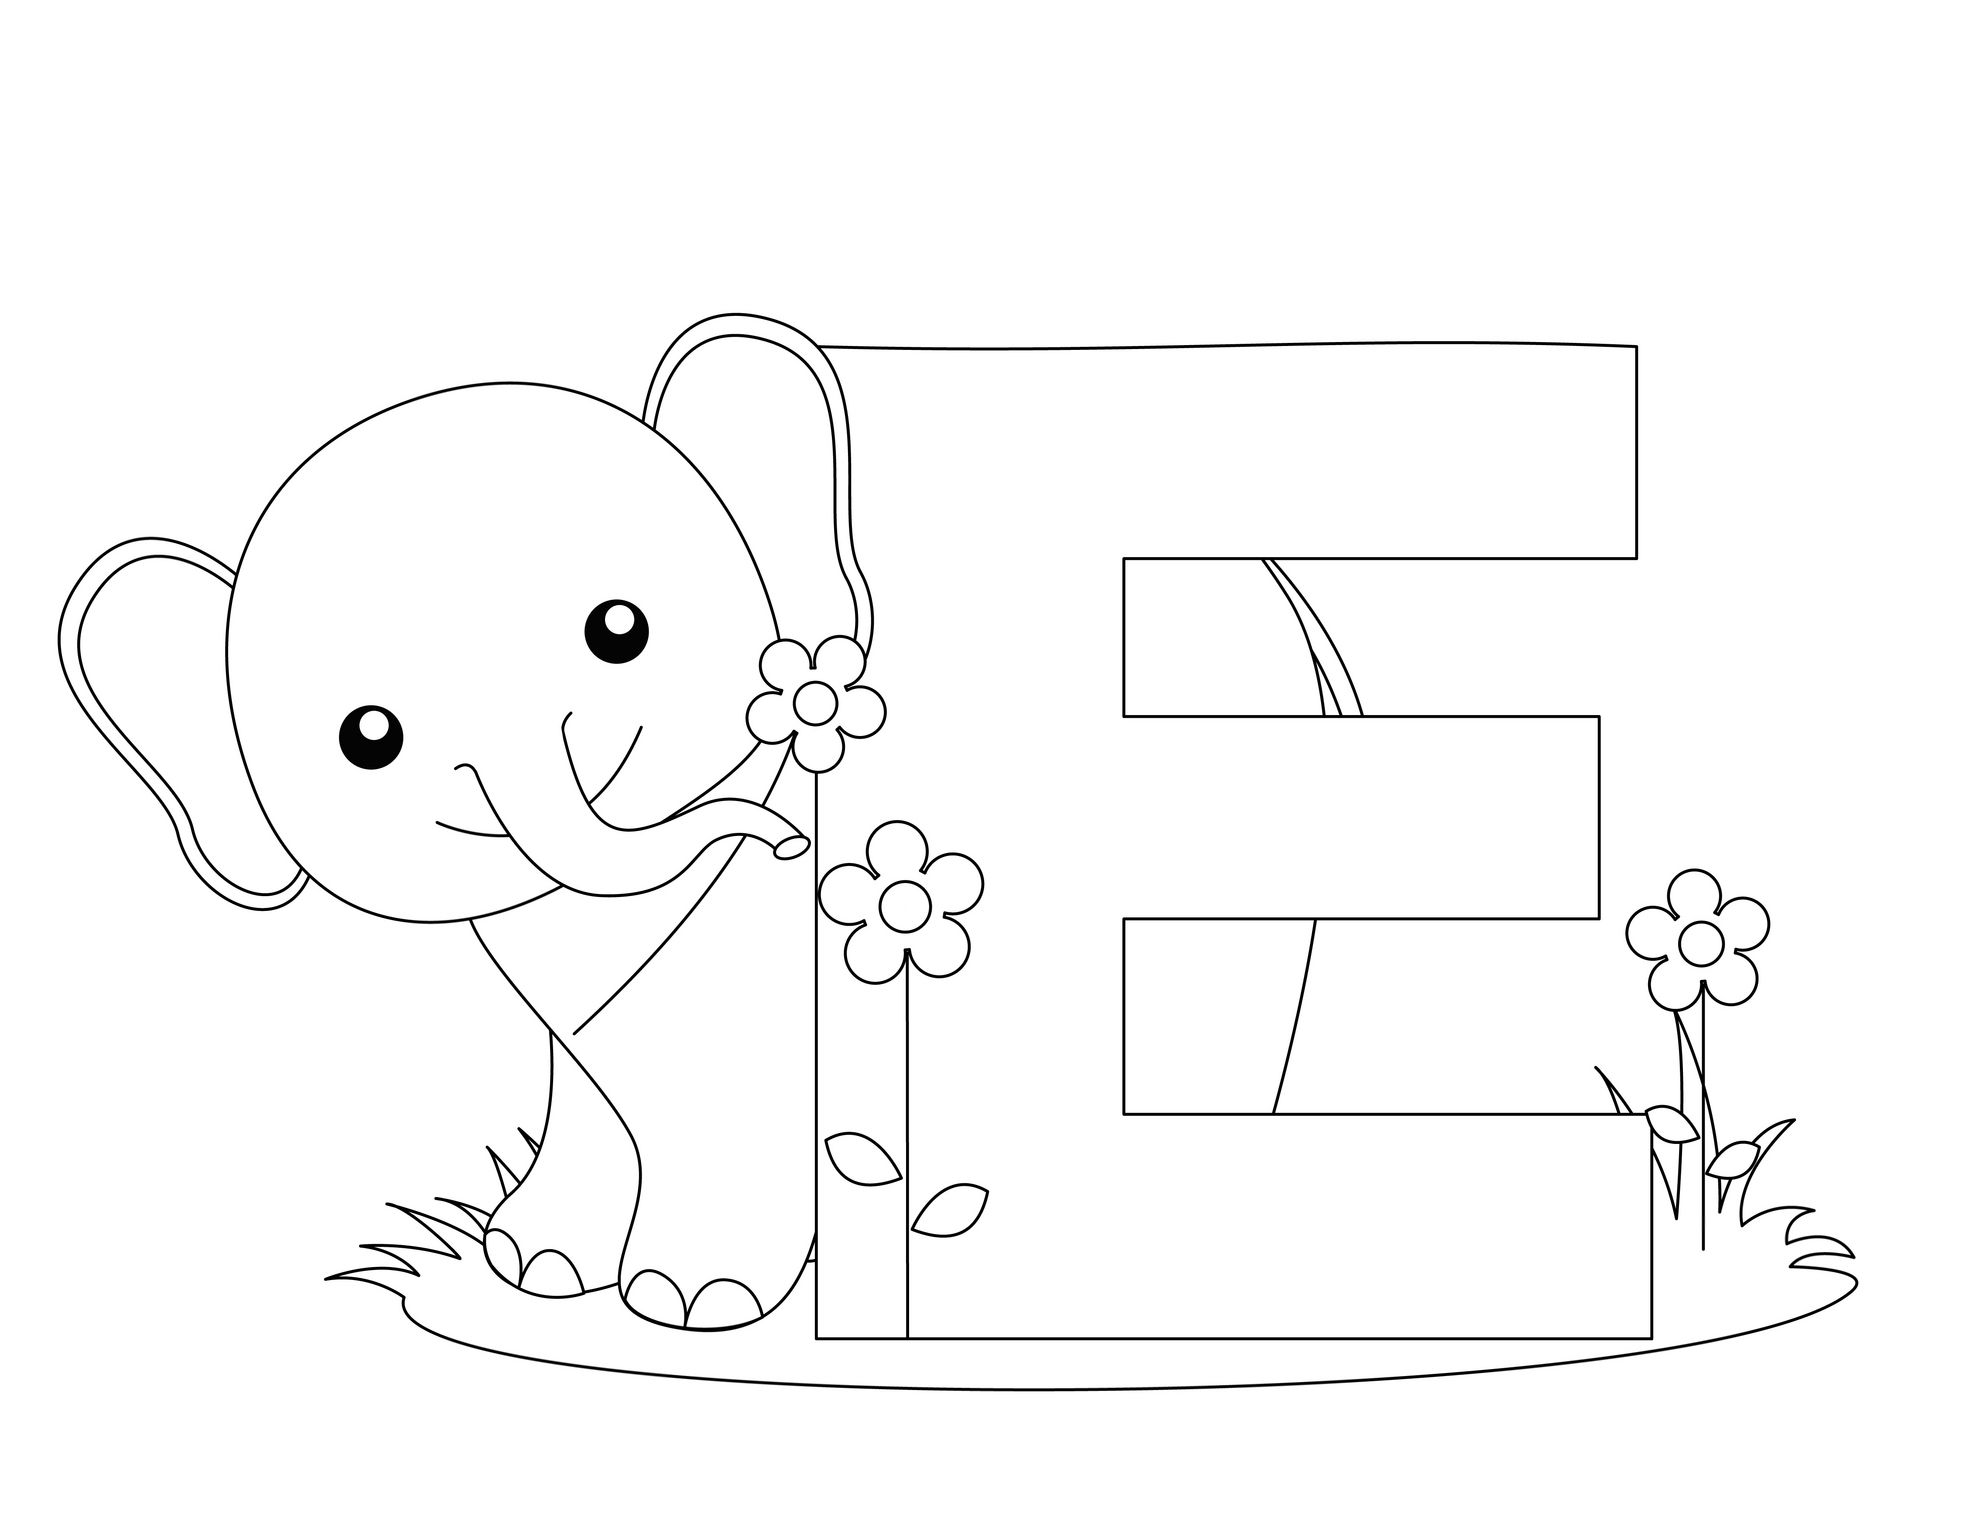 Cool letter e coloring pages selfcoloringpages com